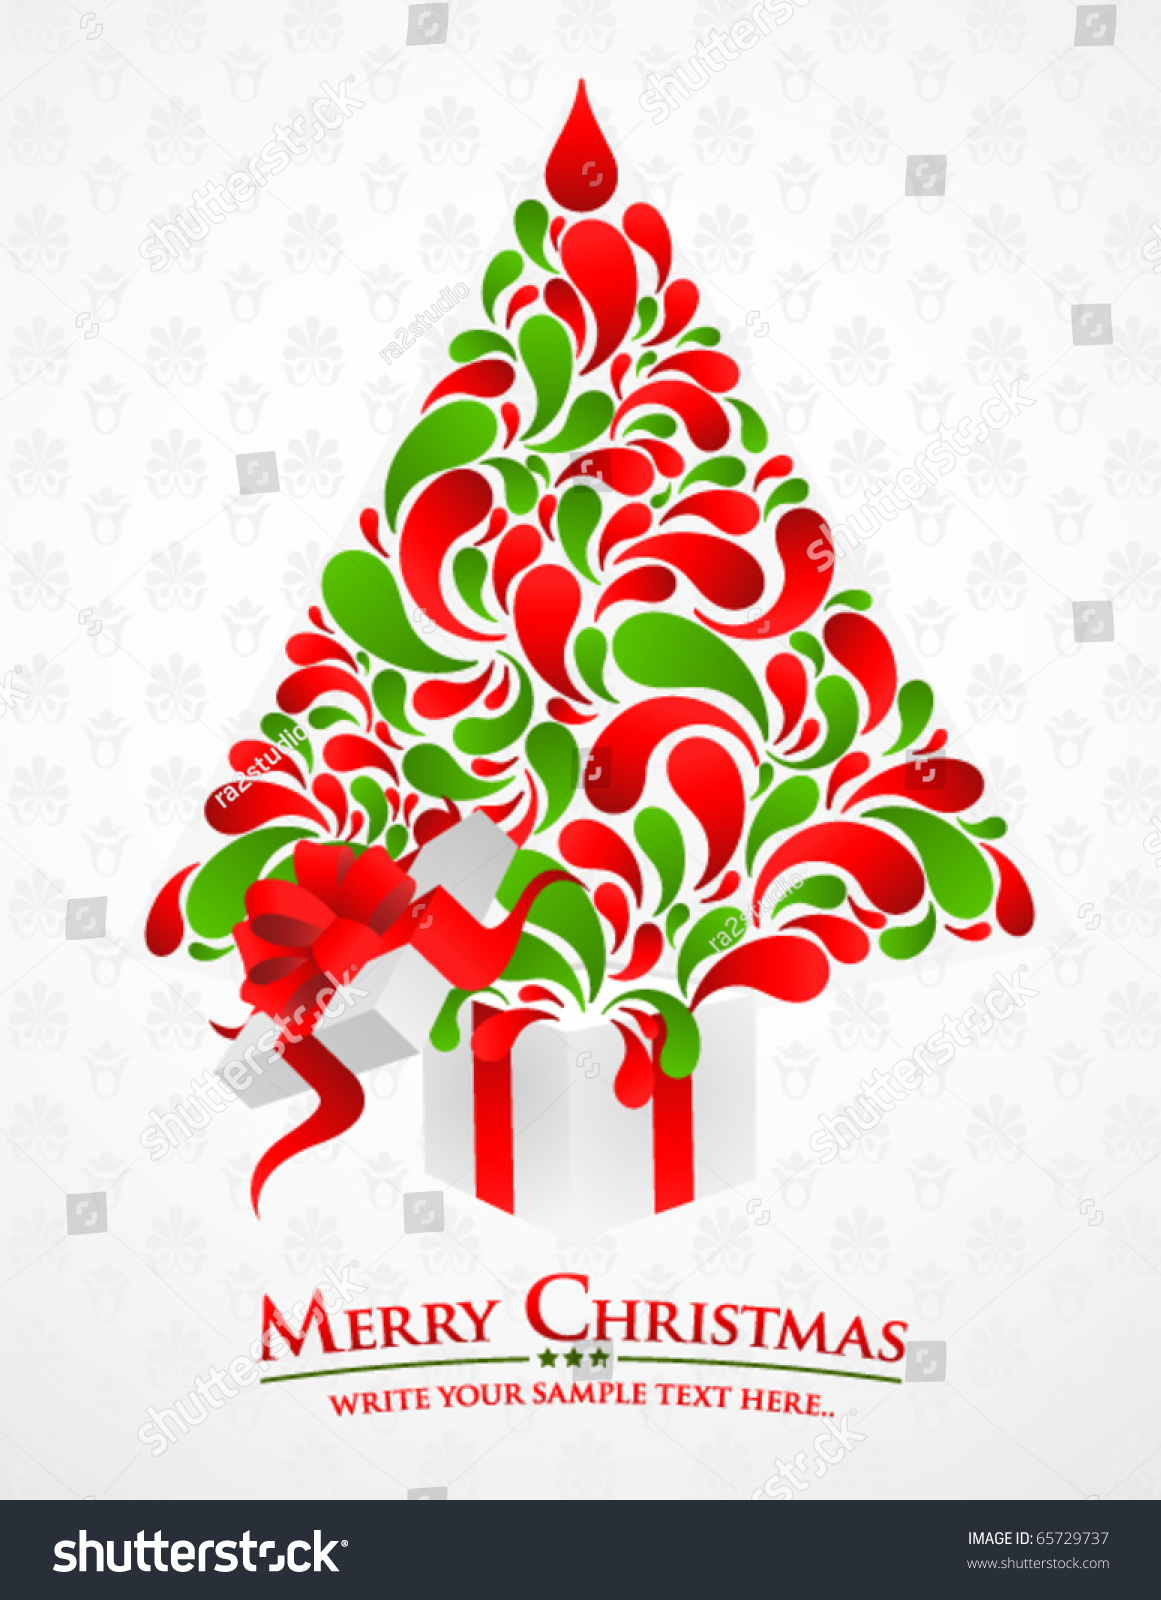 Merry Christmas Sample Text With Colorful Abstract ...